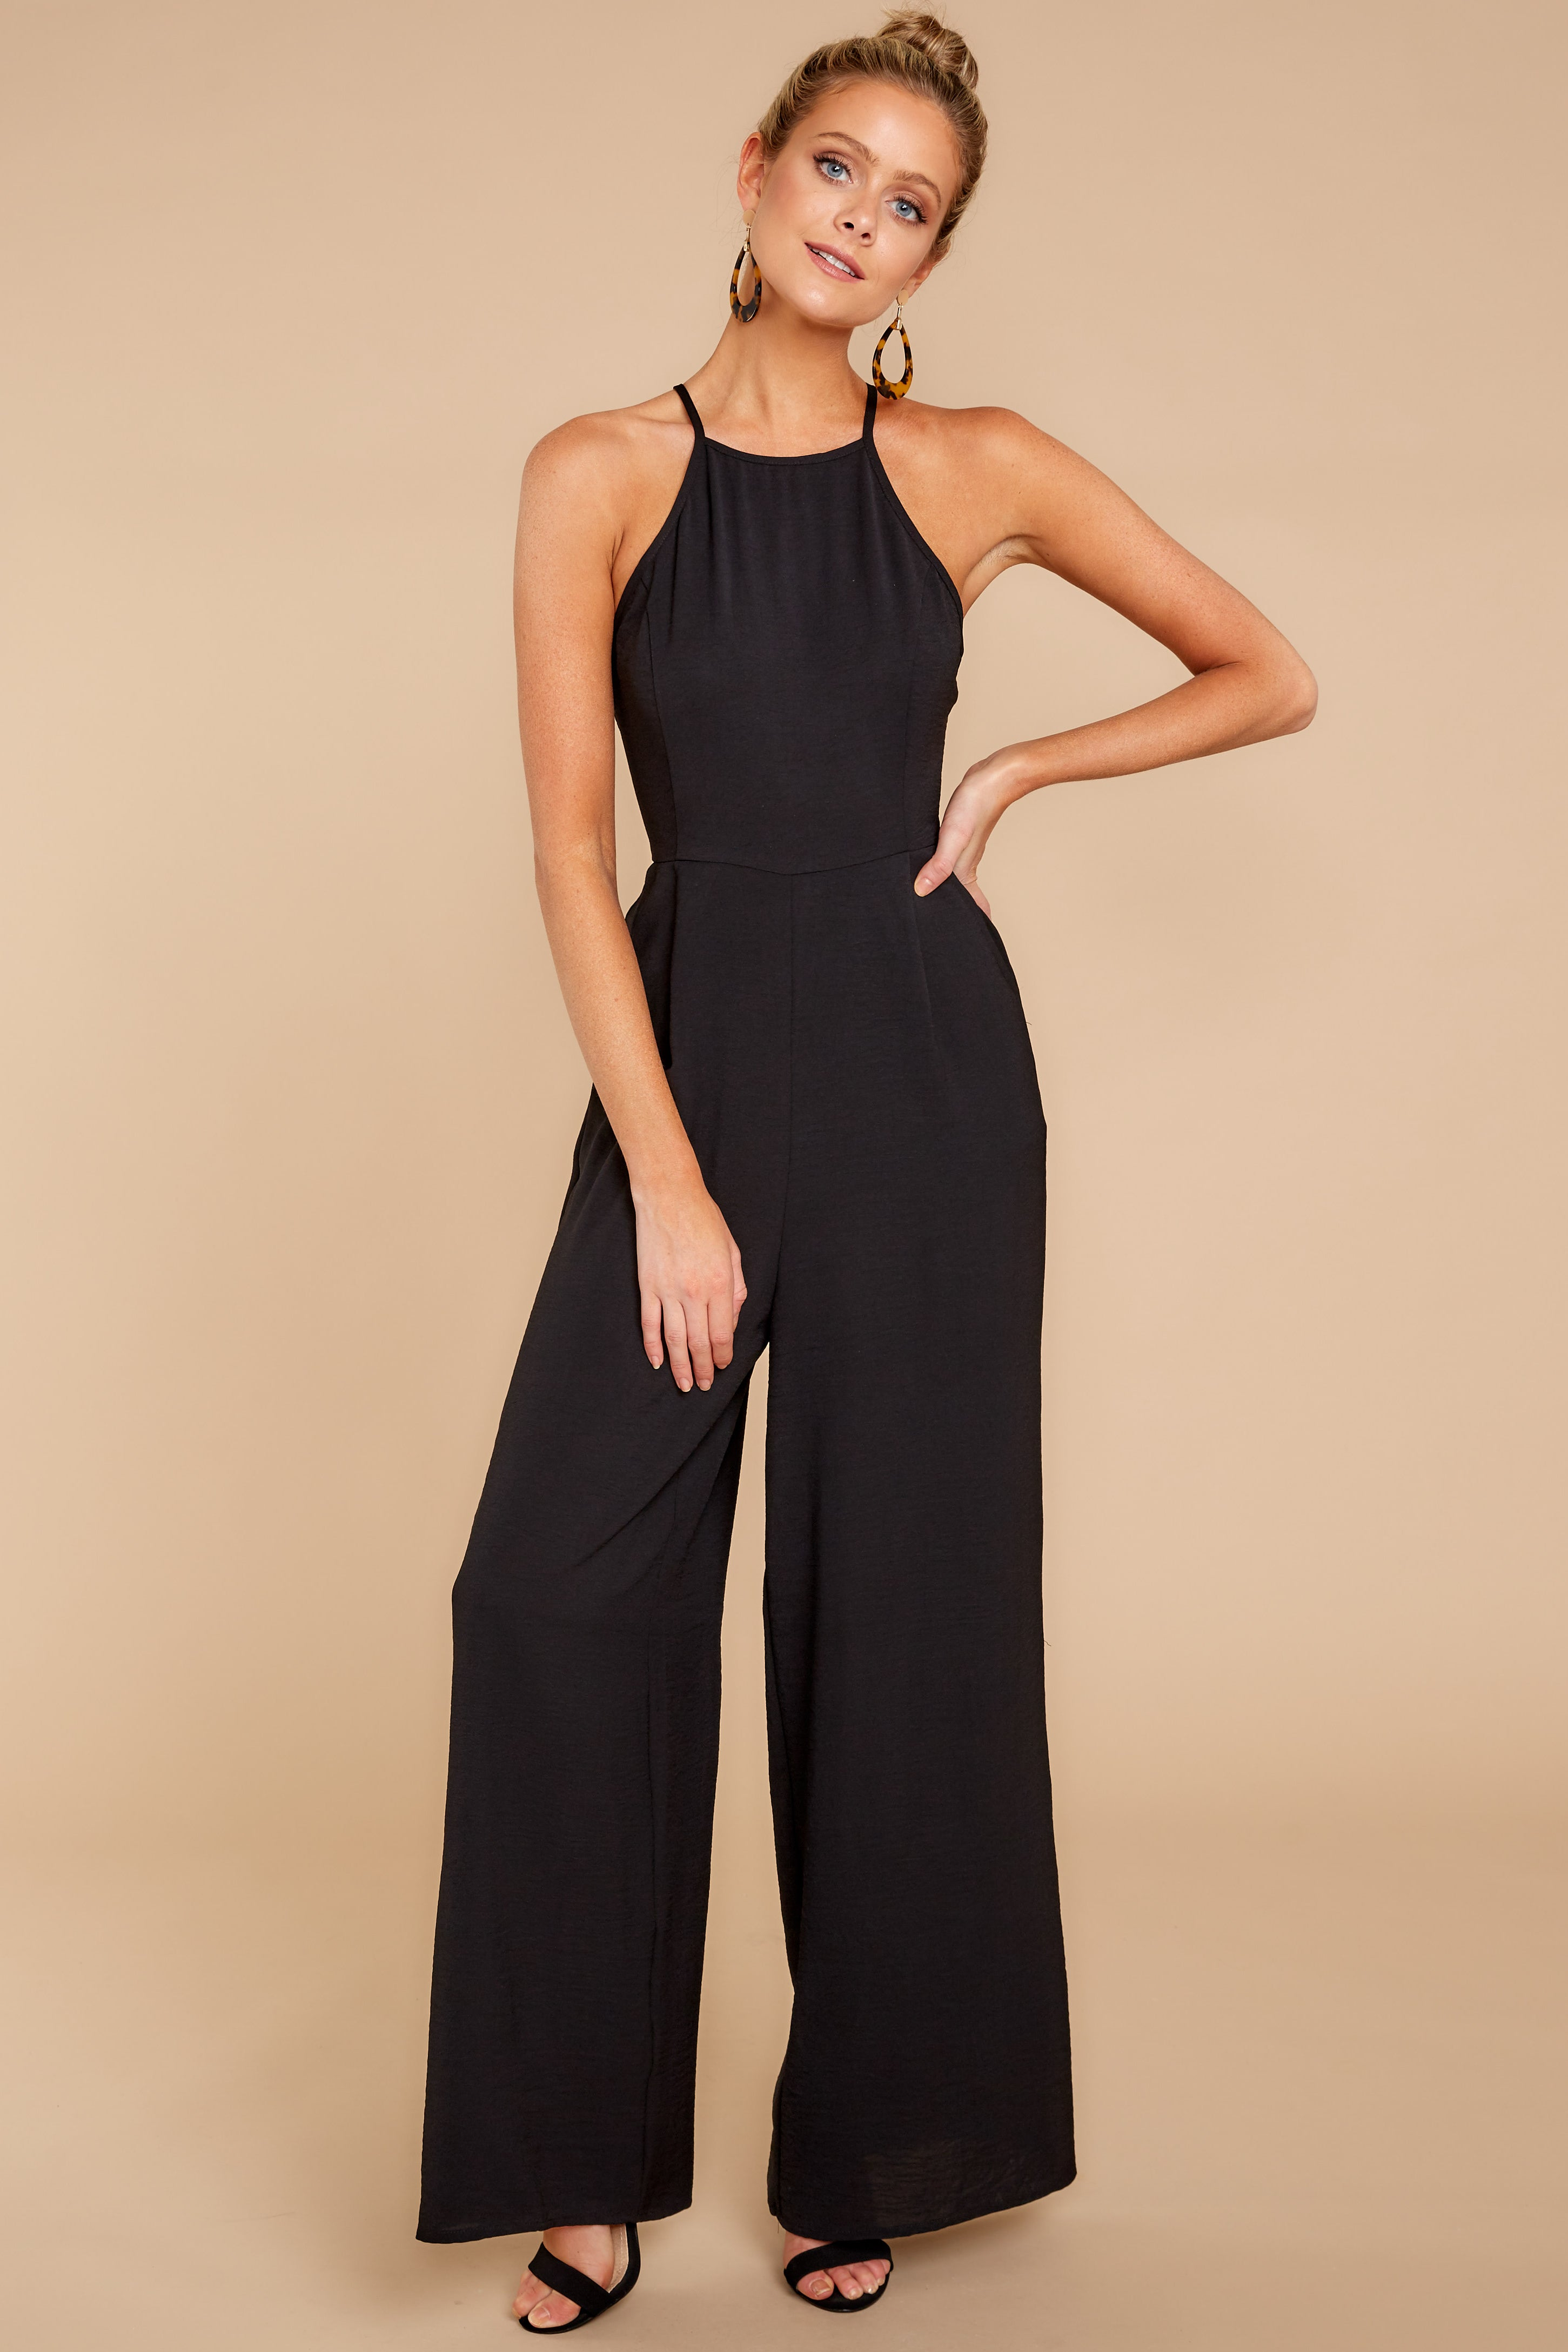 1 No More Games Black Jumpsuit at reddressboutique.com